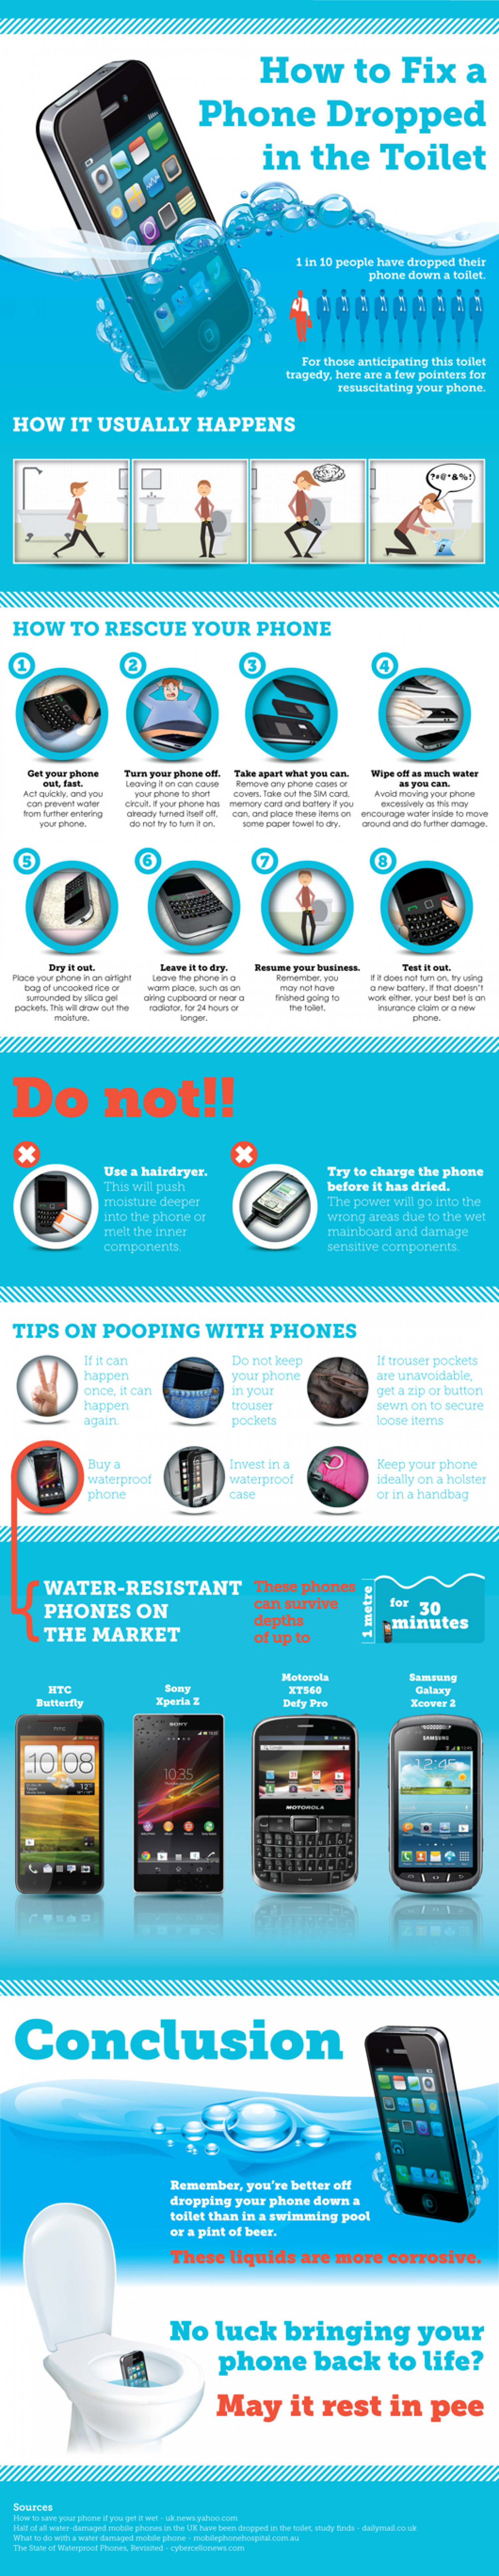 How to Fix a Phone Dropped in the Toilet Infographic